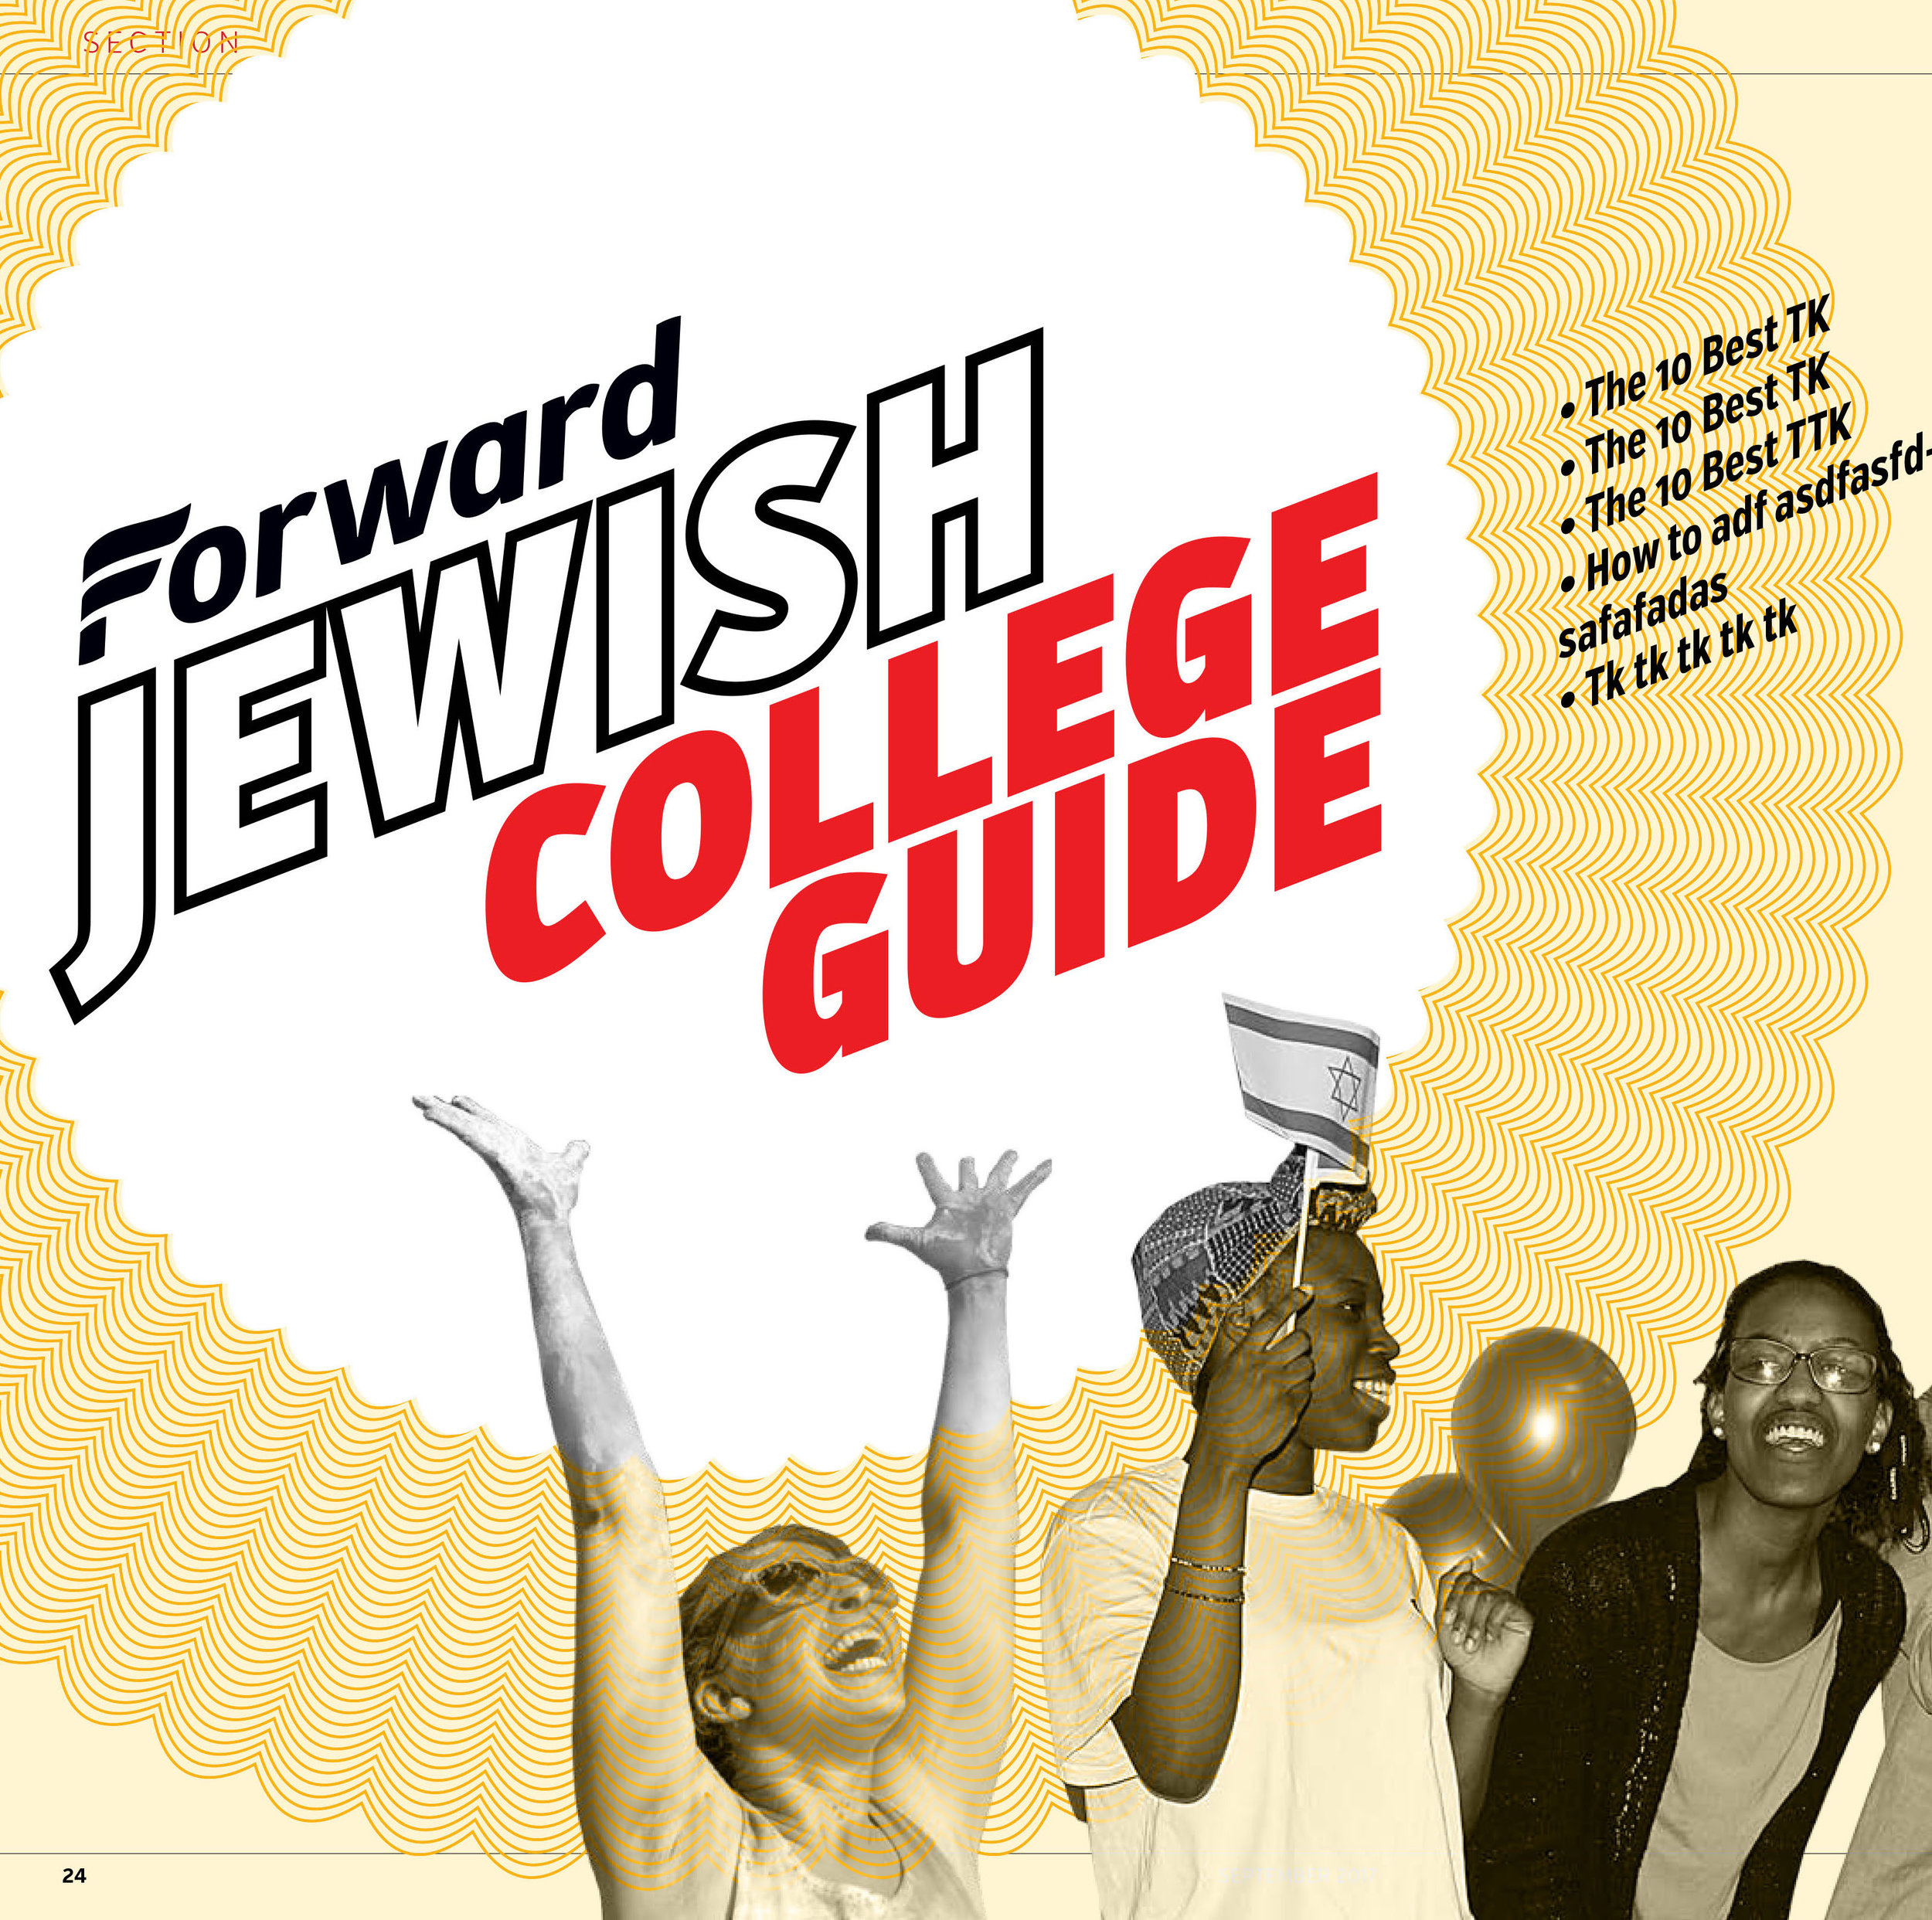 College Guide-1 copy.jpg